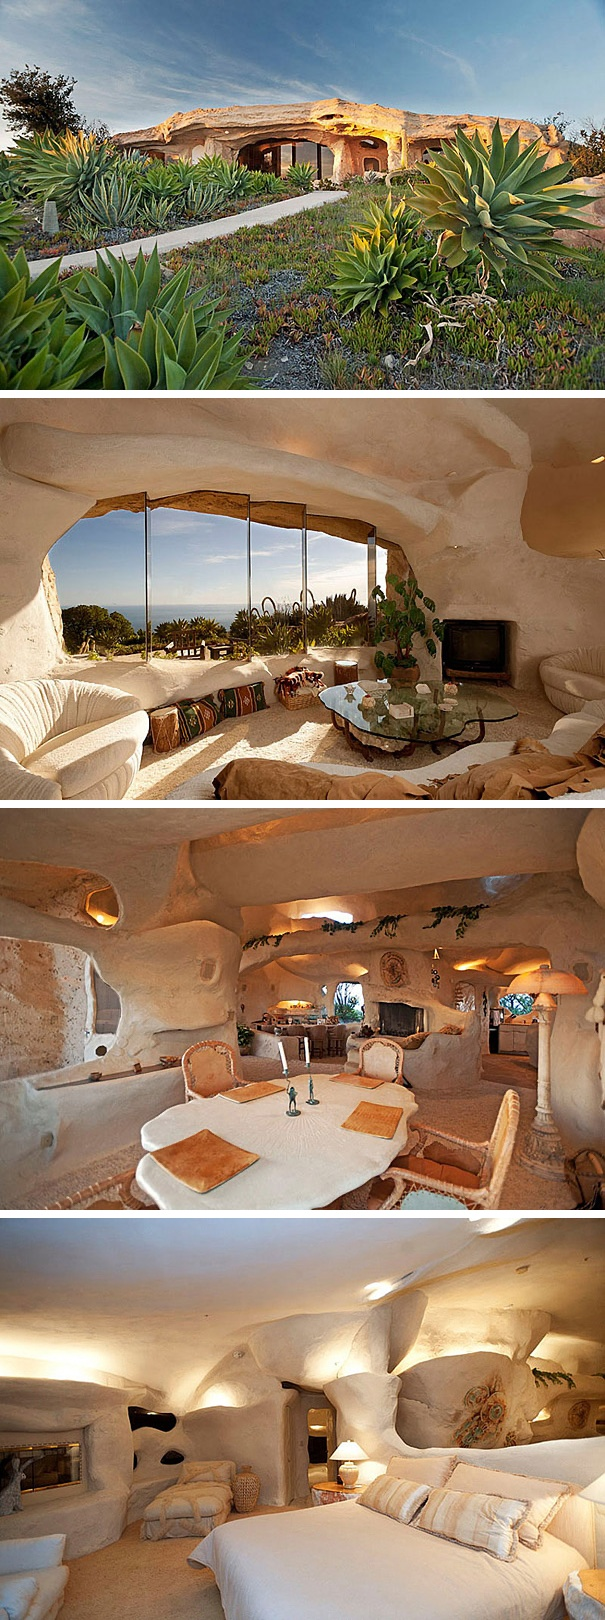 10 Of the Most Unusual Homes in the World! Nowadays, Any House Design is Possible!